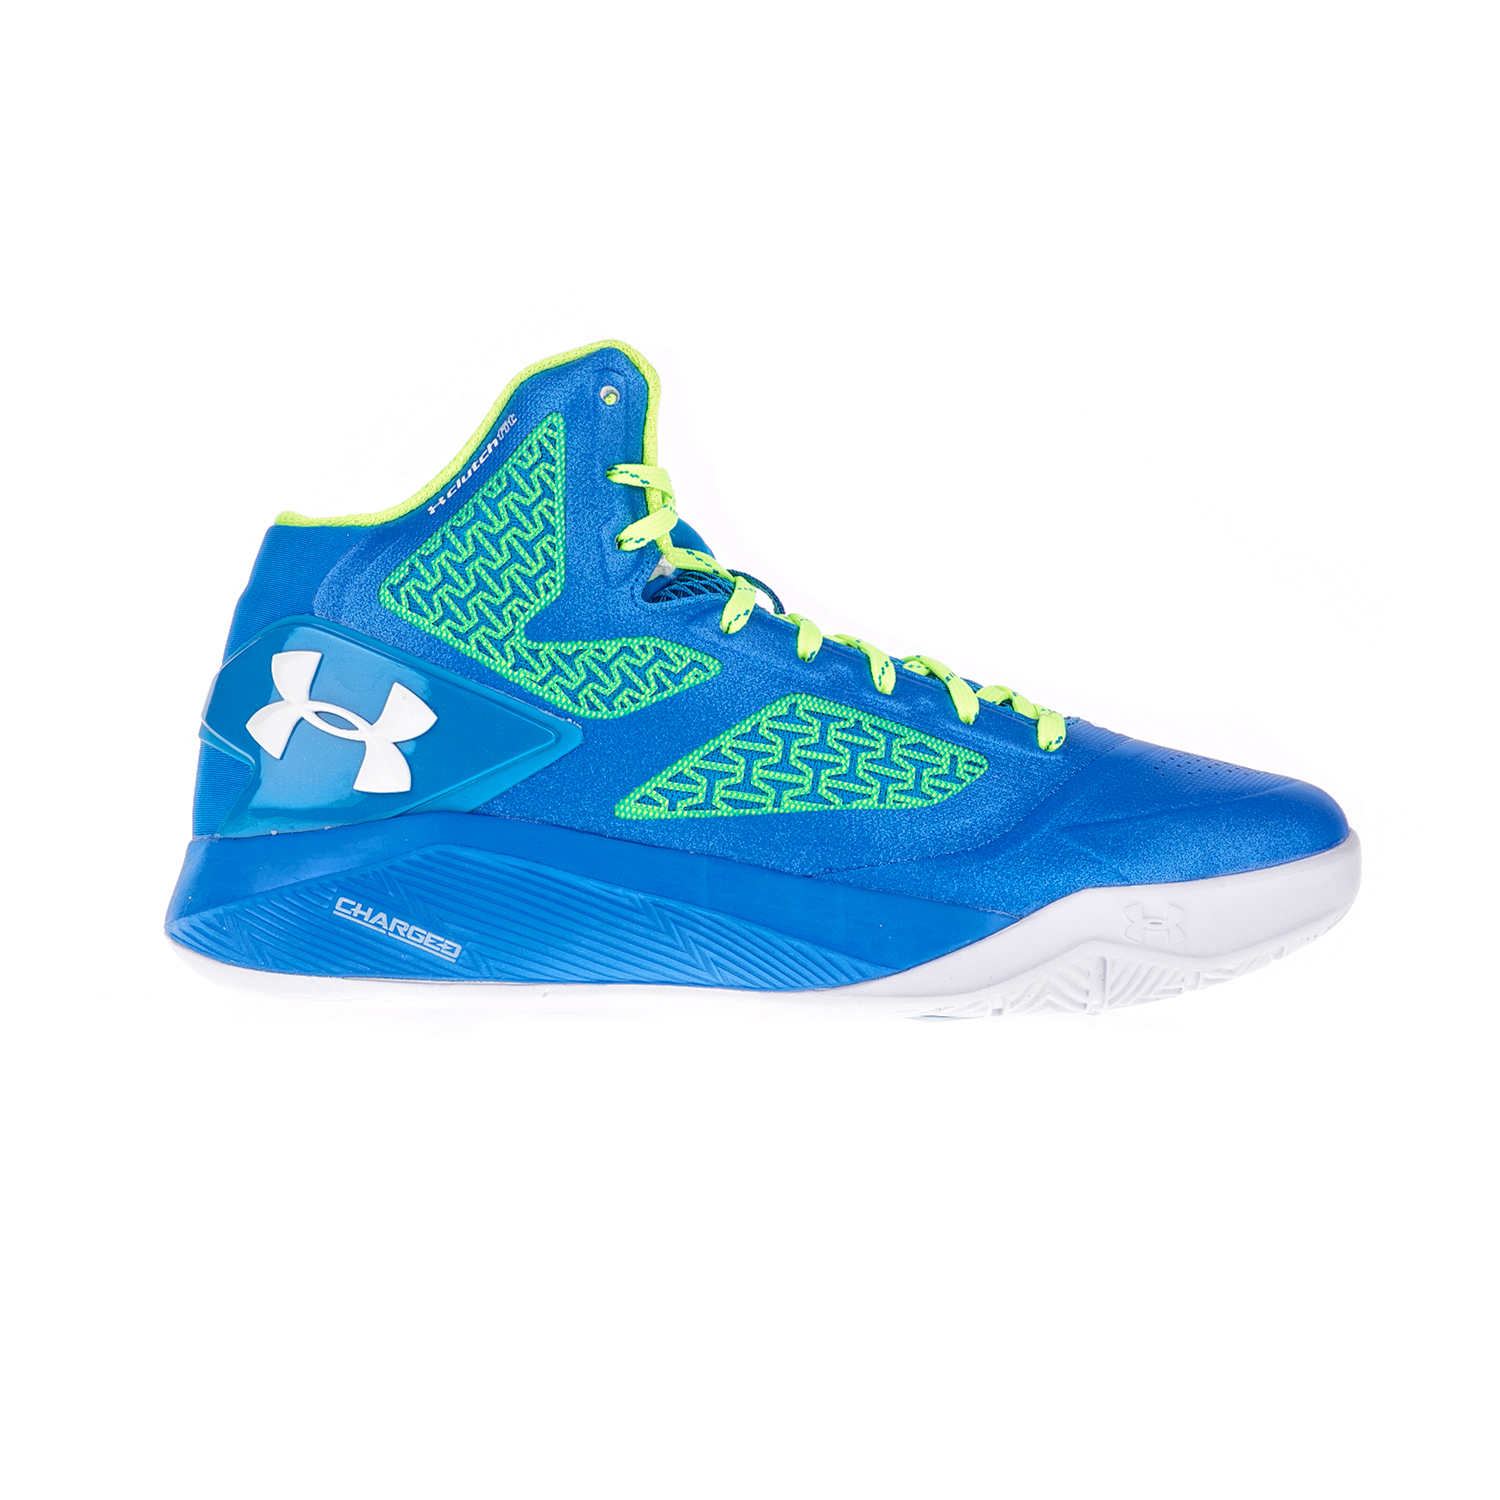 UNDER ARMOUR – Ανδρικά παπούτσια μπάσκετ UNDER ARMOUR CLUTCHFIT DRIVE 2 F μπλε-πράσινα